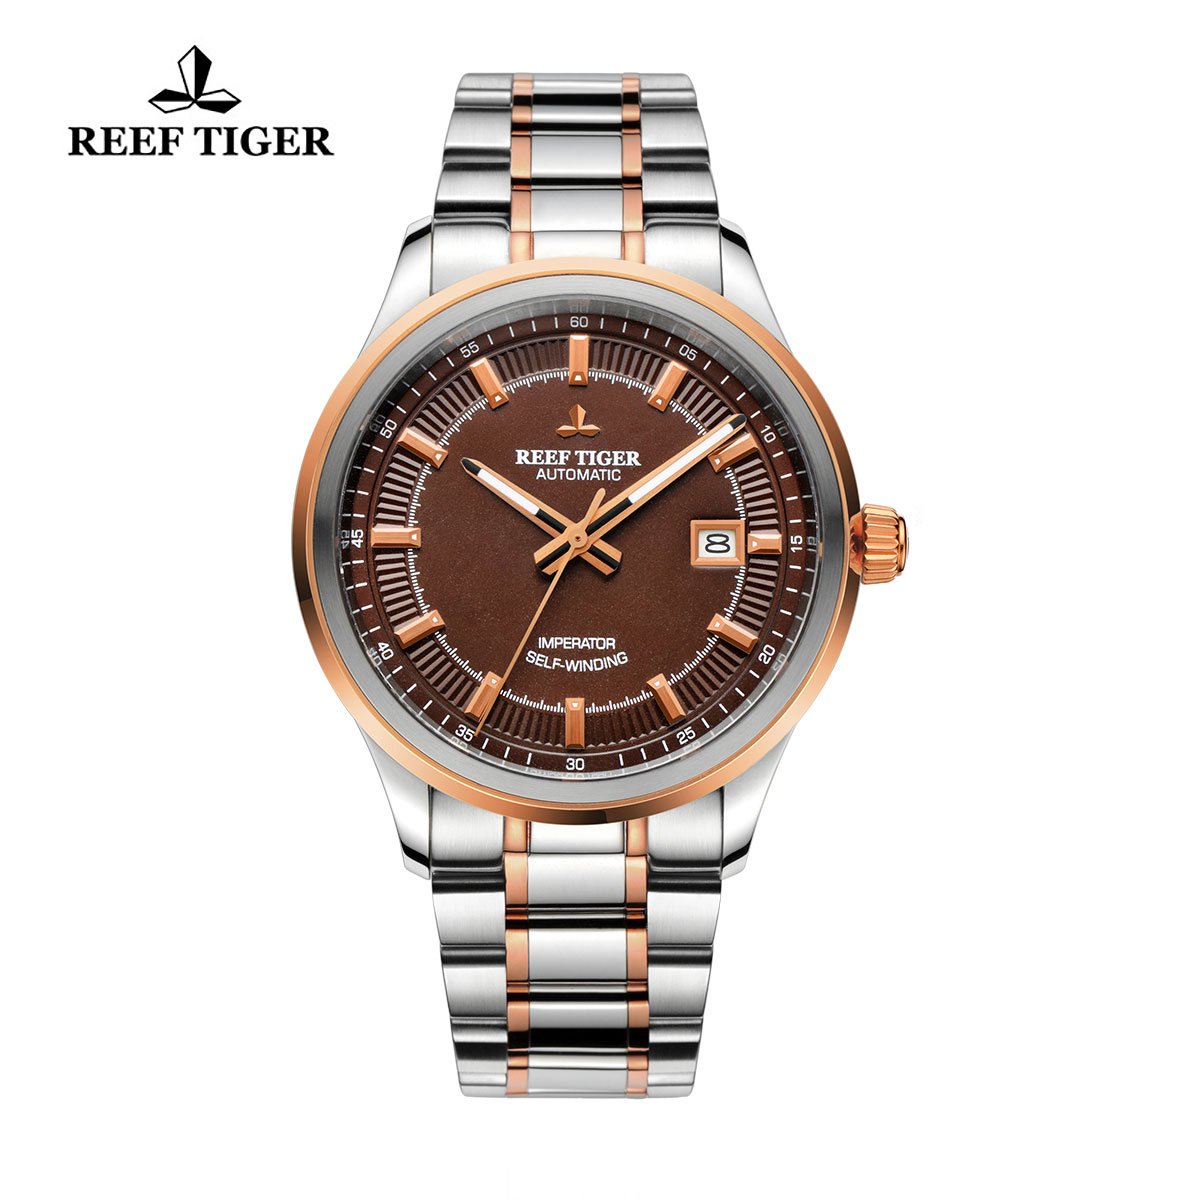 Reef Tiger Imperator Dress Watch Automatic Steel/Rose Gold Brown Dial RGA8015-PST